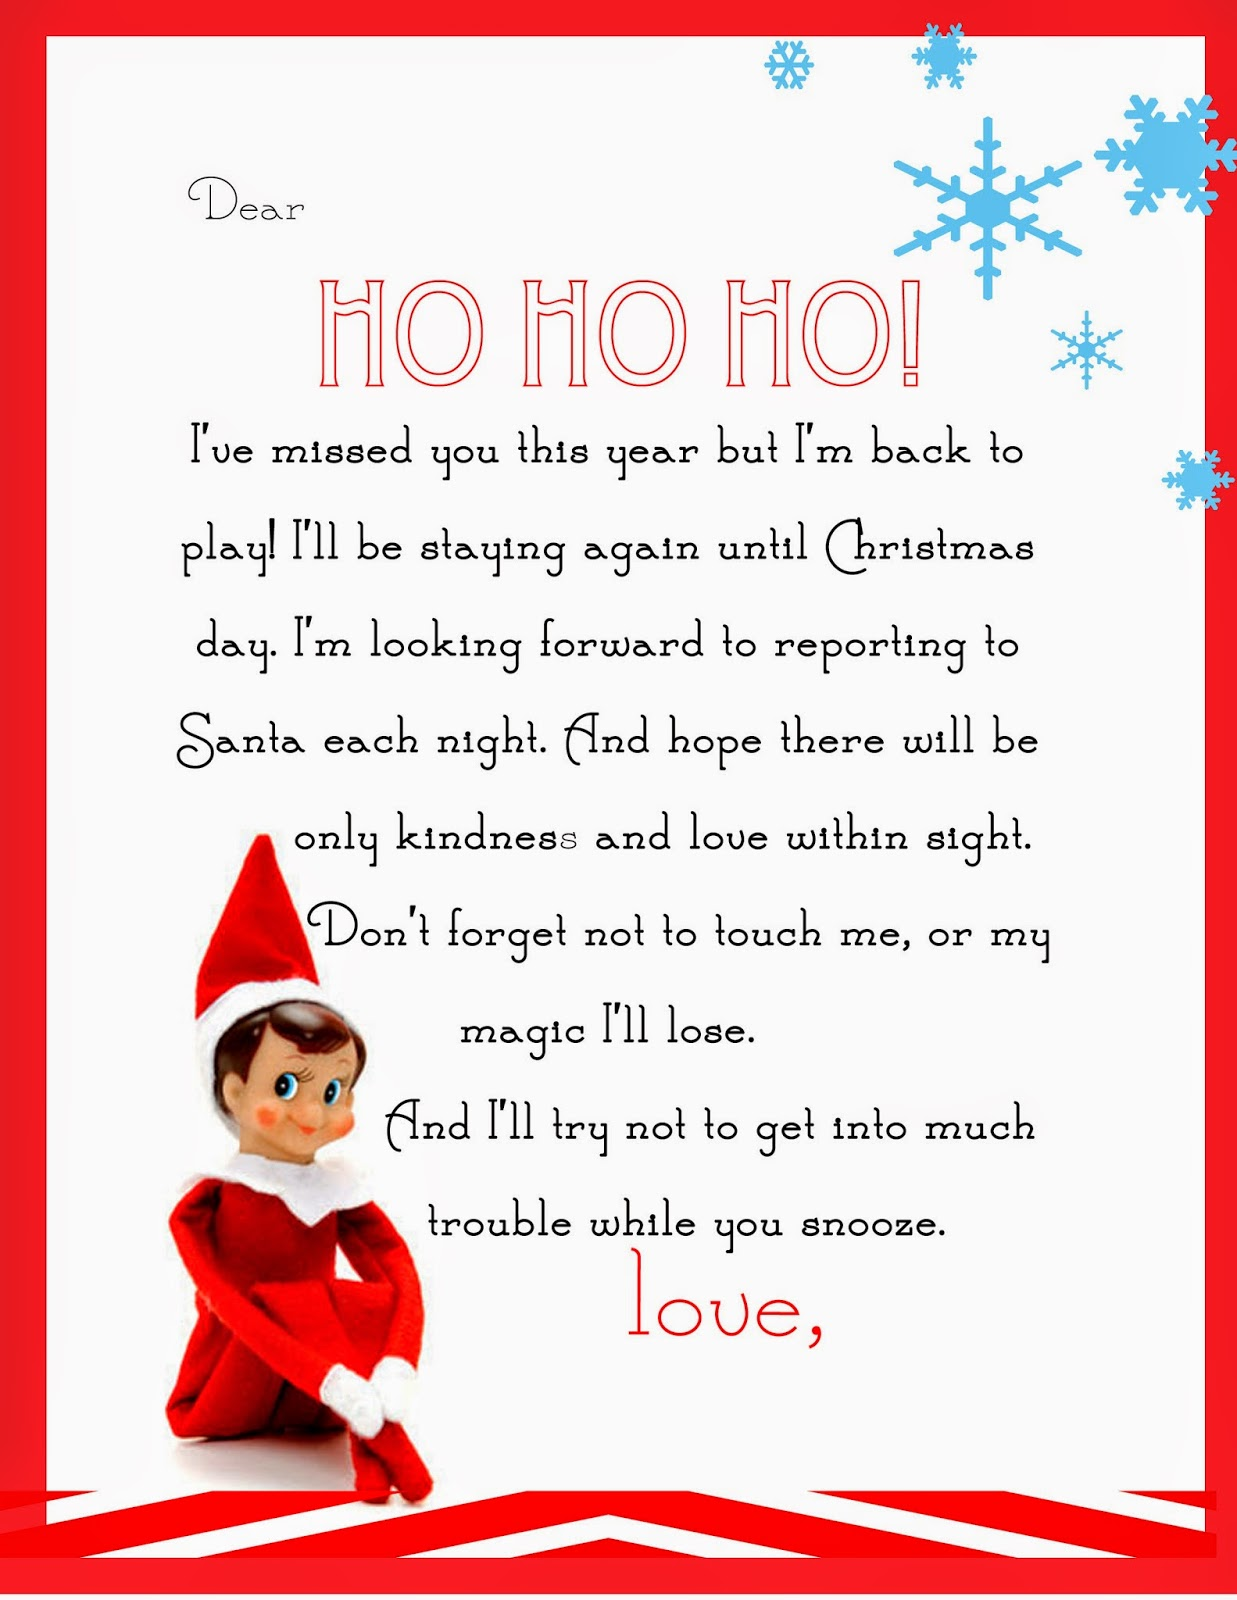 picture about Elf on the Shelf Printable Props named Elf upon the Shelf Suggestions for Introduction: 10 Cost-free Printables